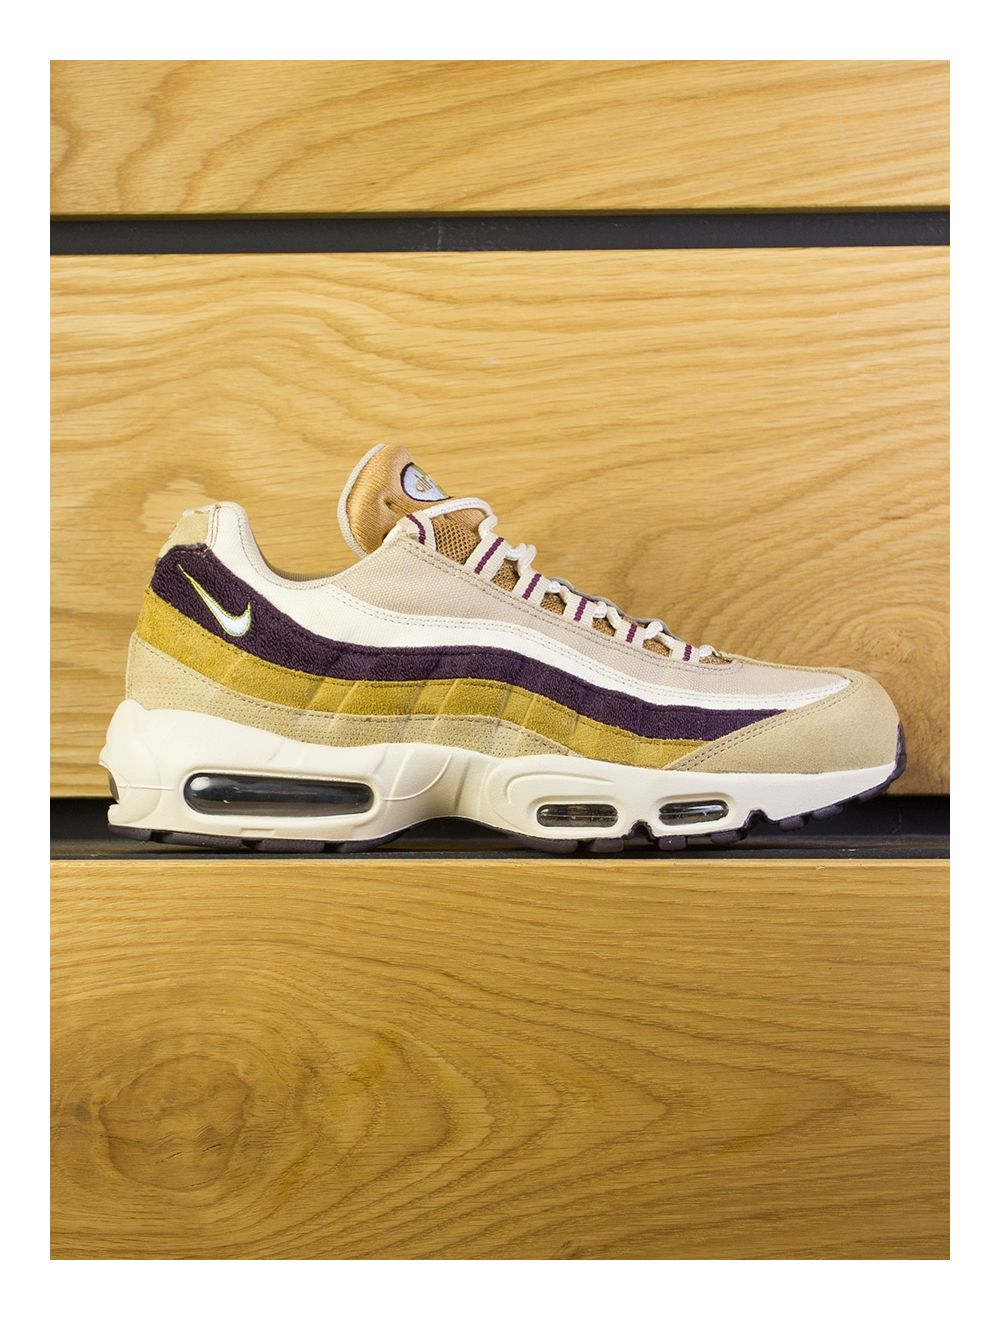 buy popular d567e 1758d Nike Air Max 95 Premium - Desert Royal Tint Camper Green